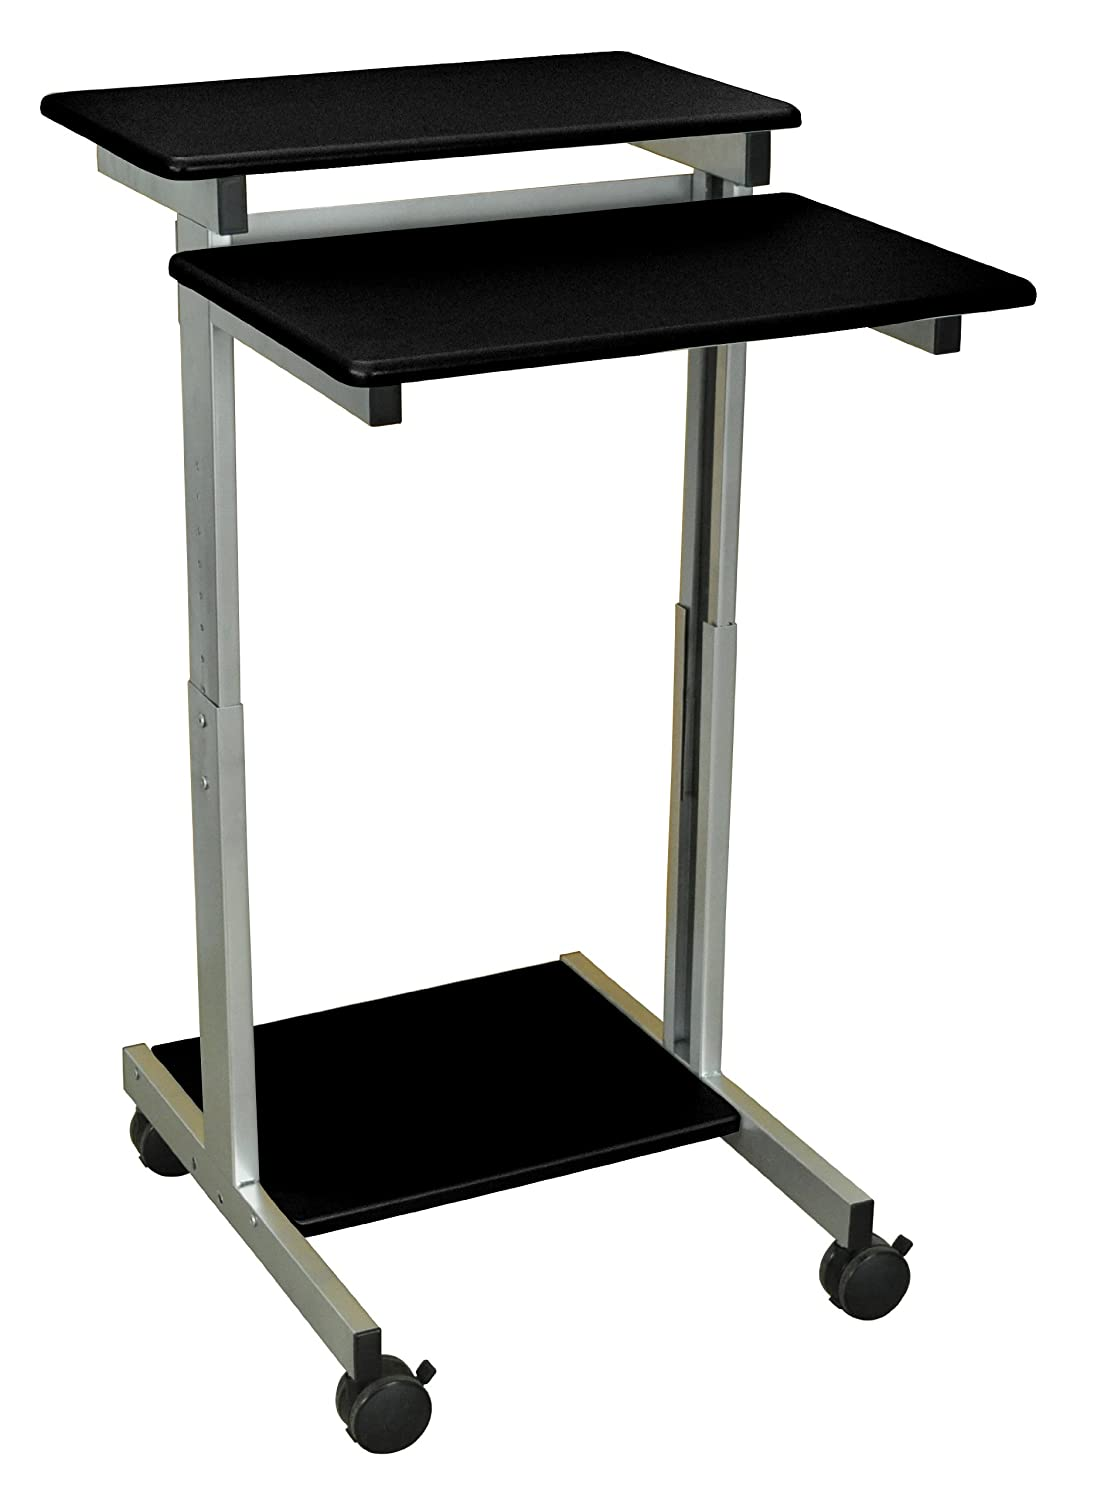 LUXOR Standup-24-B Stand Up Presentation Station, Black LUXStandup-24-B